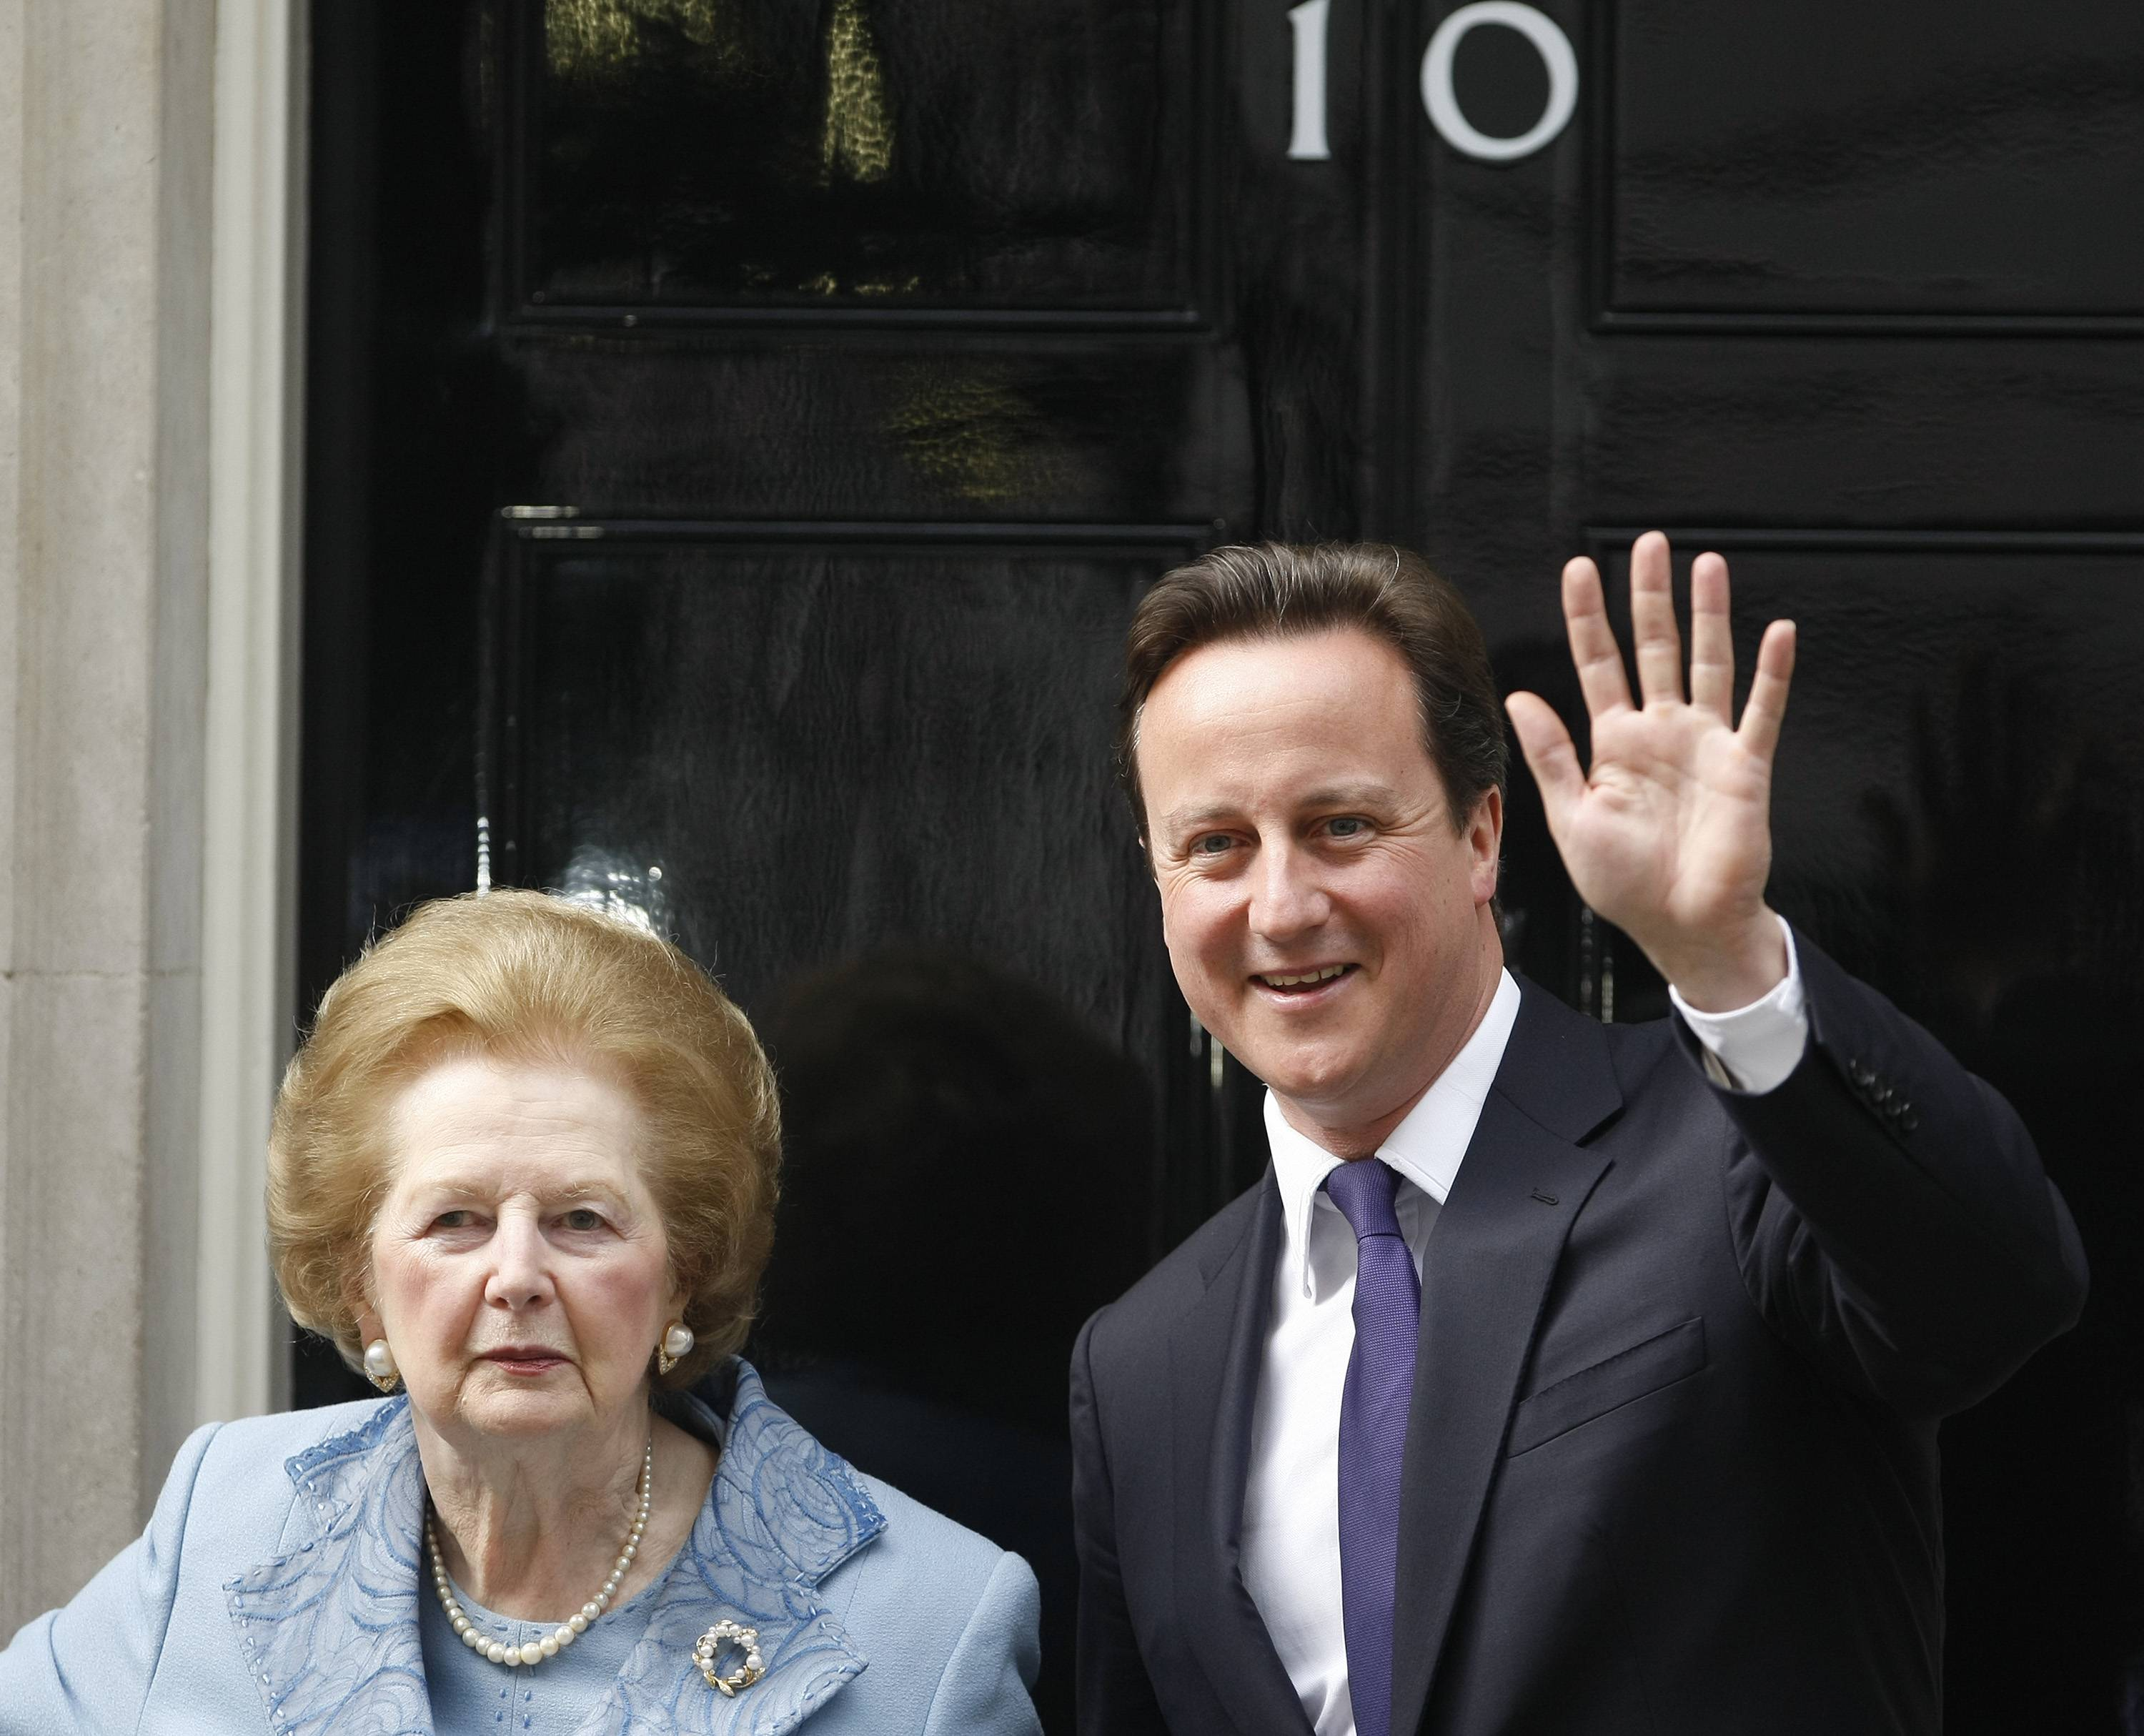 Britain's Prime Minister David Cameron, right, poses with former Prime Minister Margaret Thatcher on the doorstep of 10 Downing Street in London.